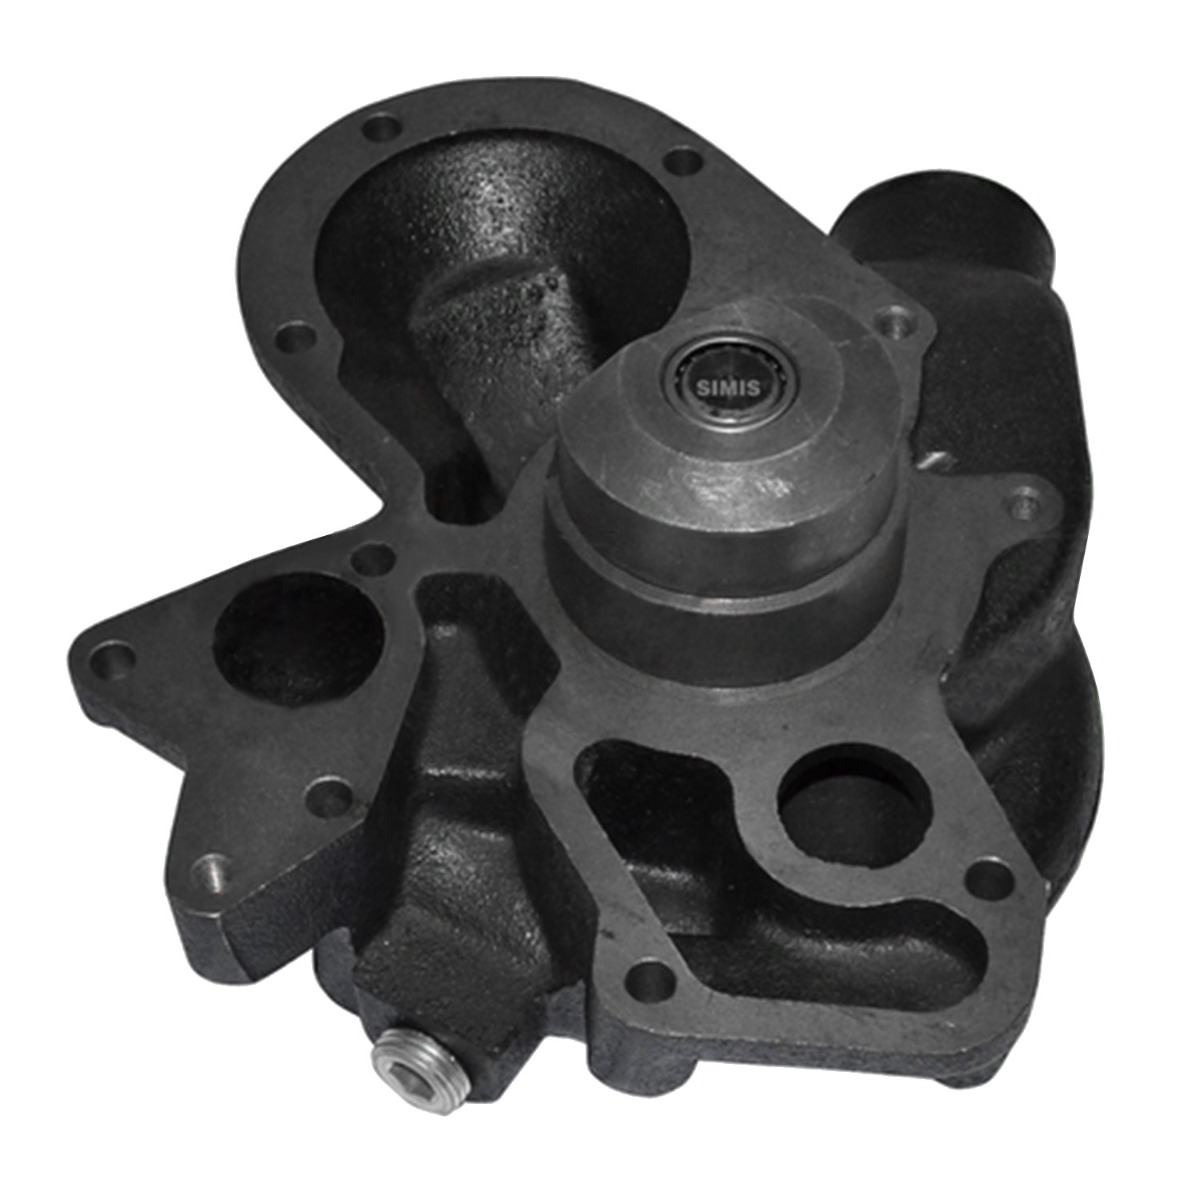 Water Pump 02/202510 Compatible with Perkins 1004.4/1004.4t V82